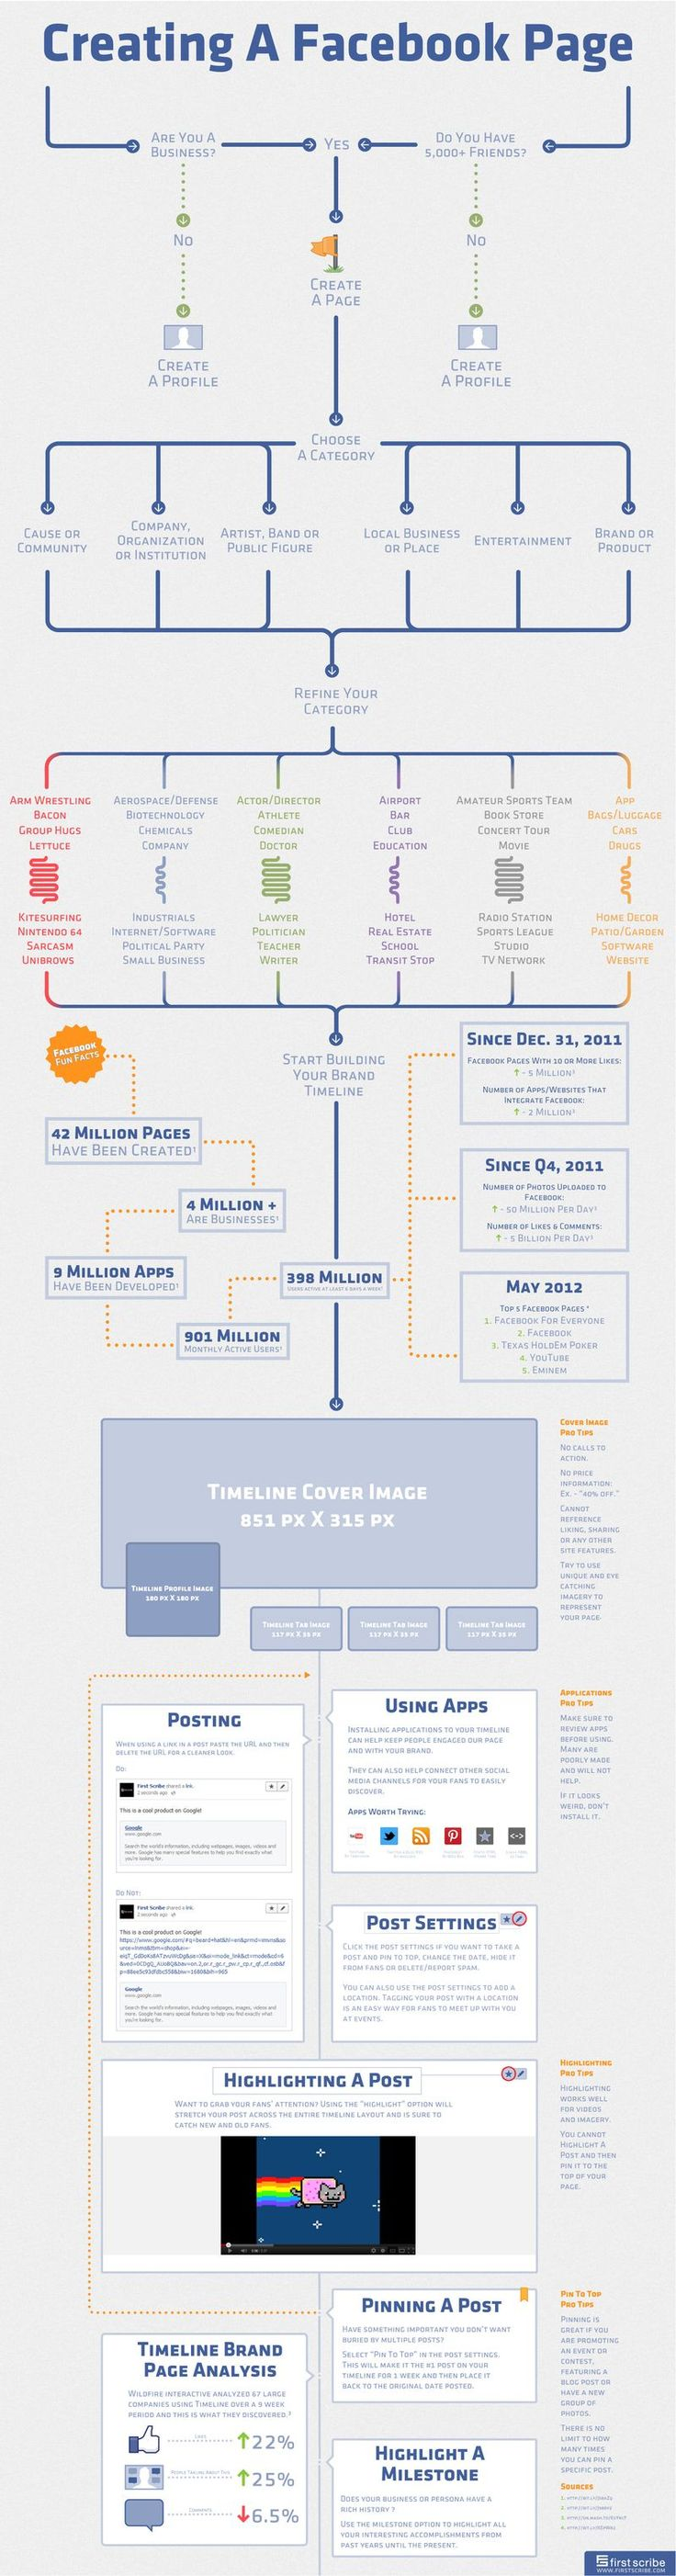 Should You Create a Facebook Page? #infographic